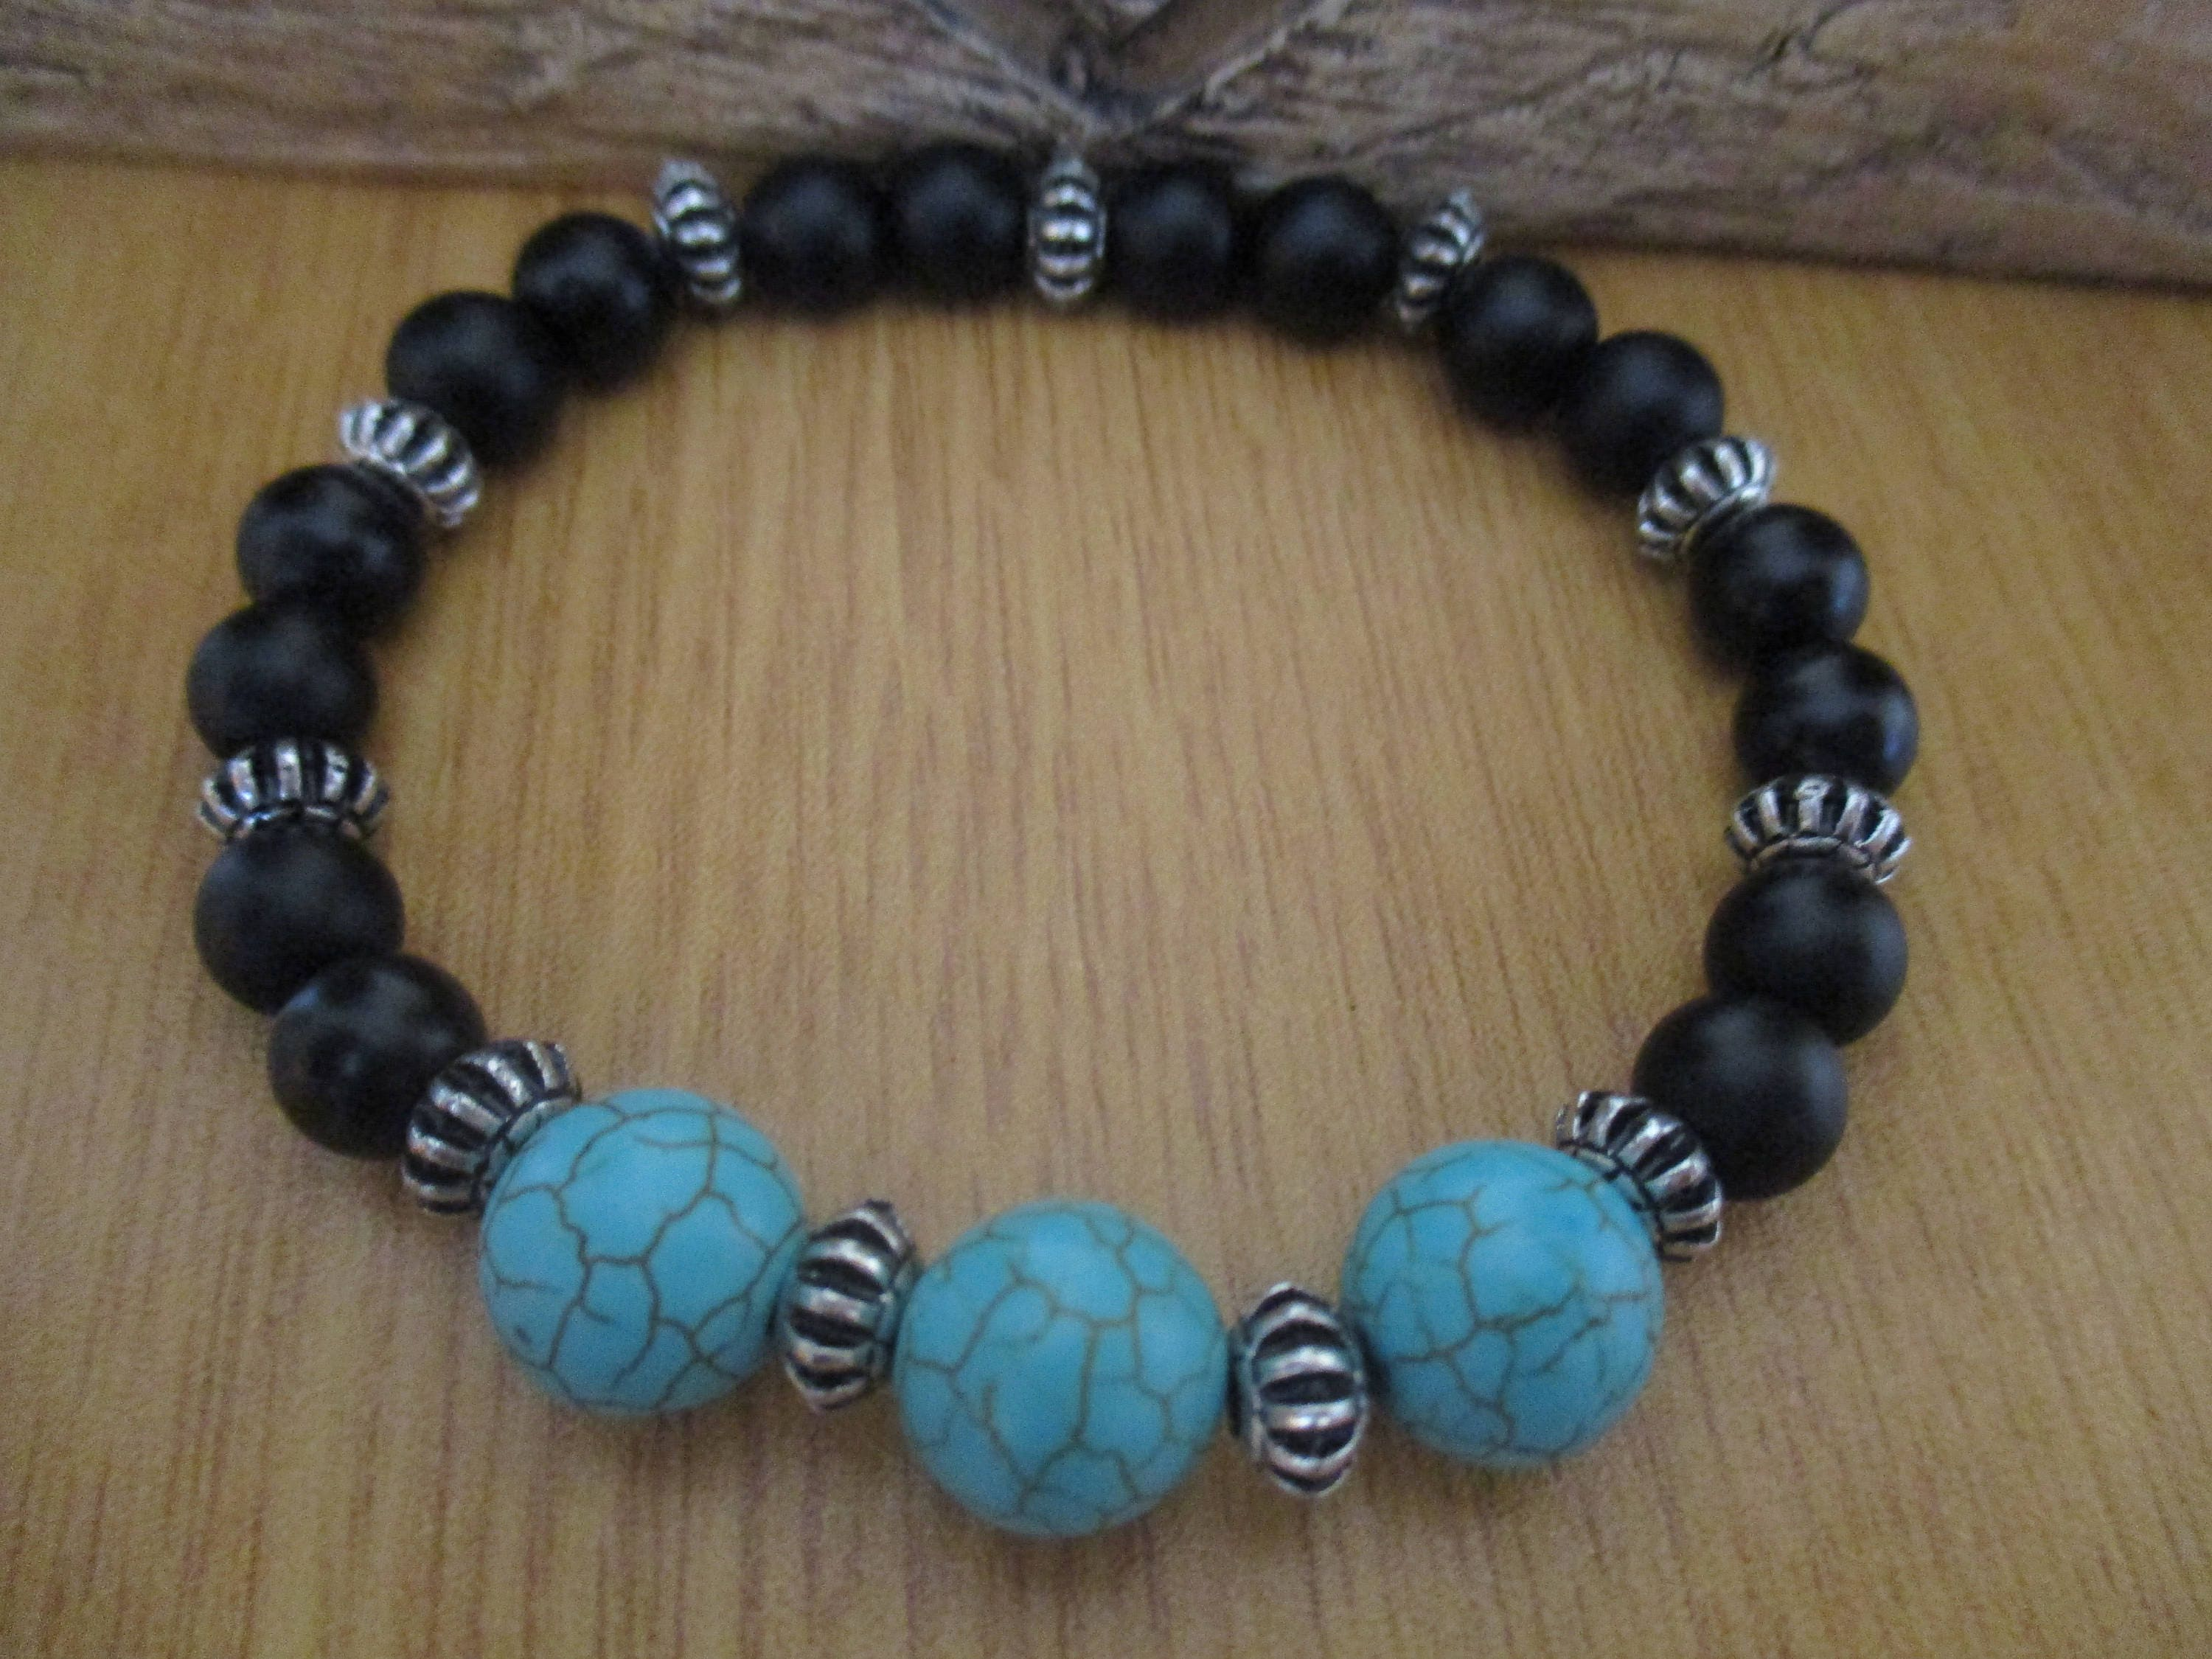 Mens Bracelet with Blue Turquoise Gemstone Beads Black Frosted Onyx Gemstone Beads and Tibetan Spacers